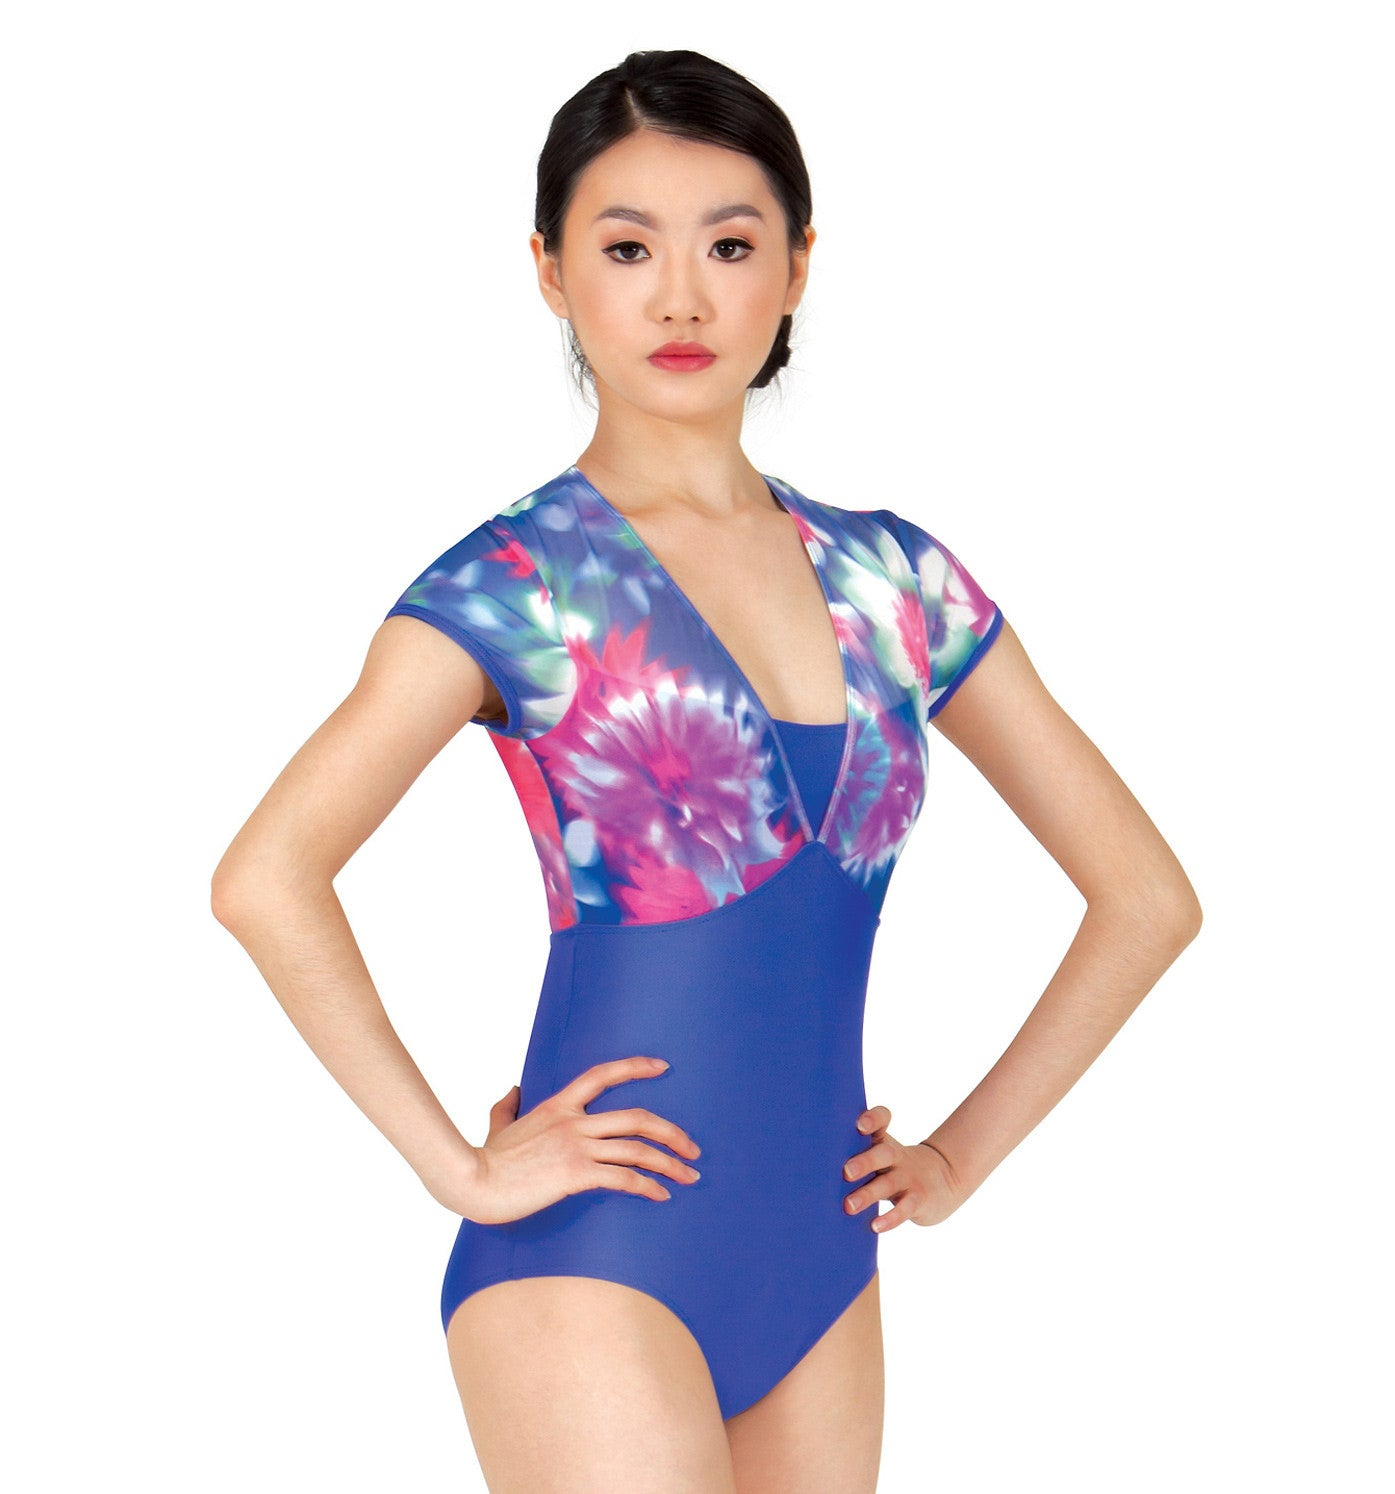 Lulli Adult Floral Print Mesh Short Sleeve Leotard for Women